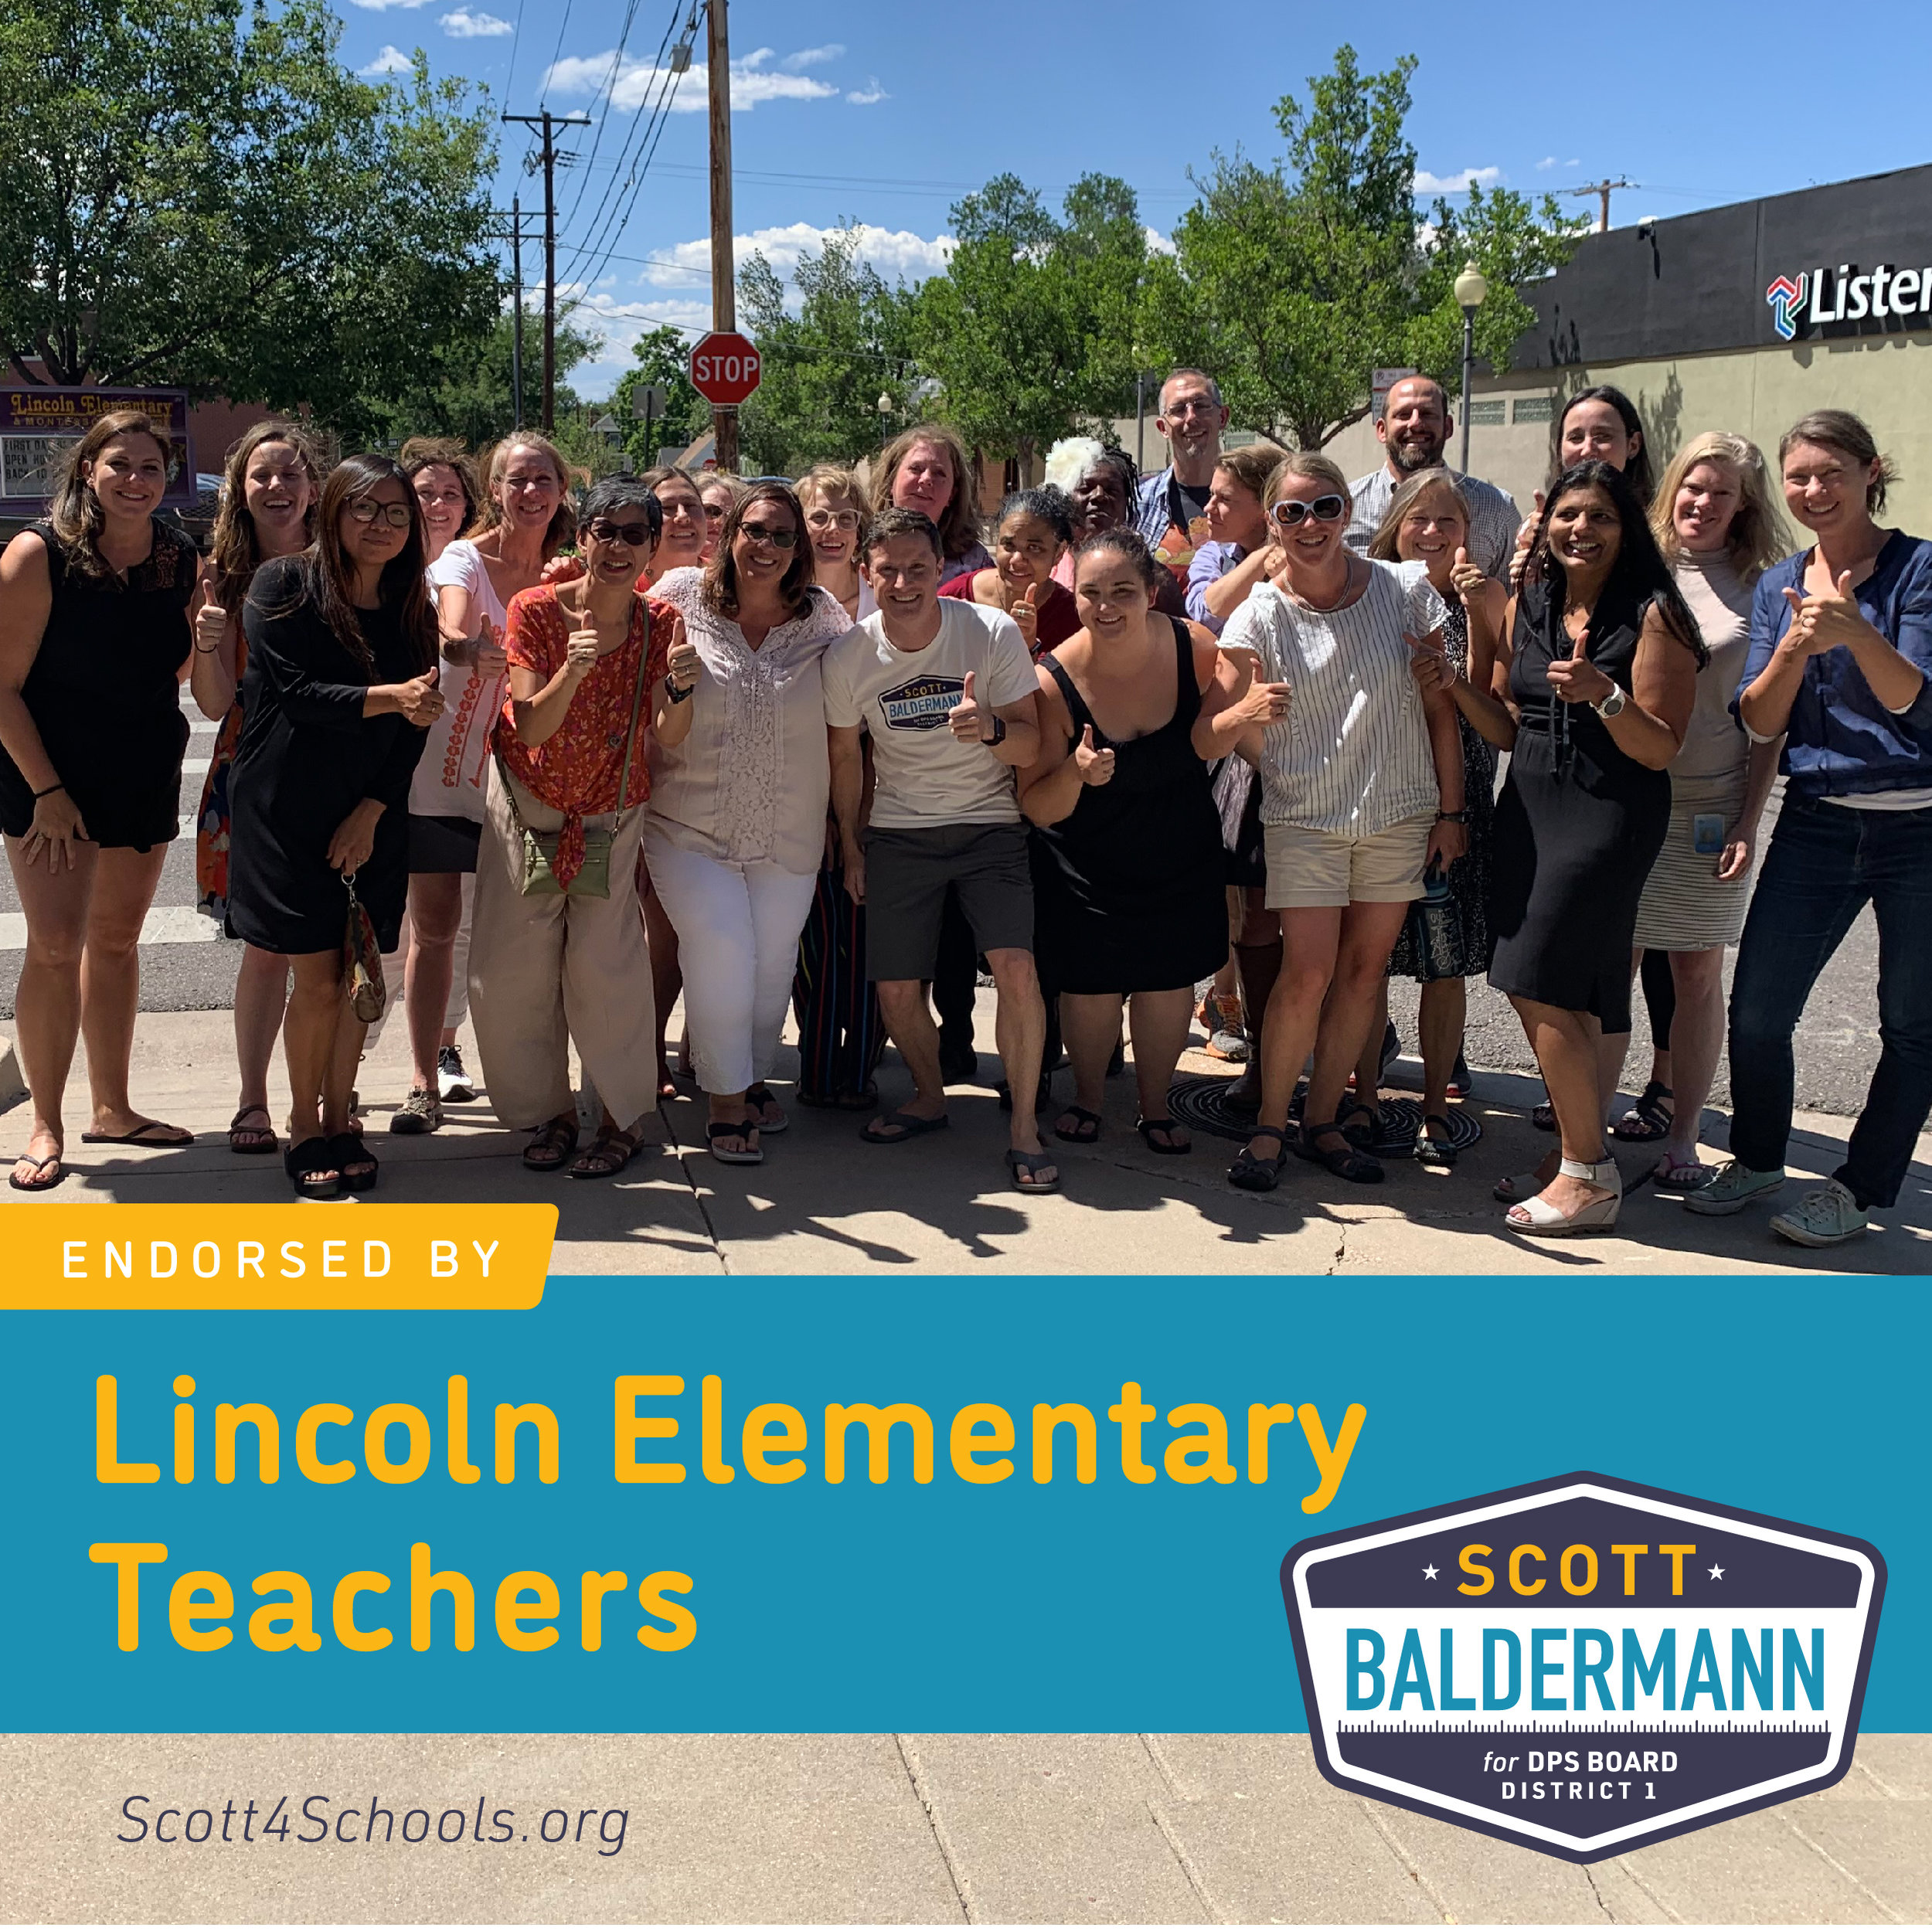 Lincoln Elementary Teachers - If you want to know why I am running, start by asking these incredibly dedicated, over-worked, under-paid teachers at Lincoln Elementary. I am so humbled by their support.